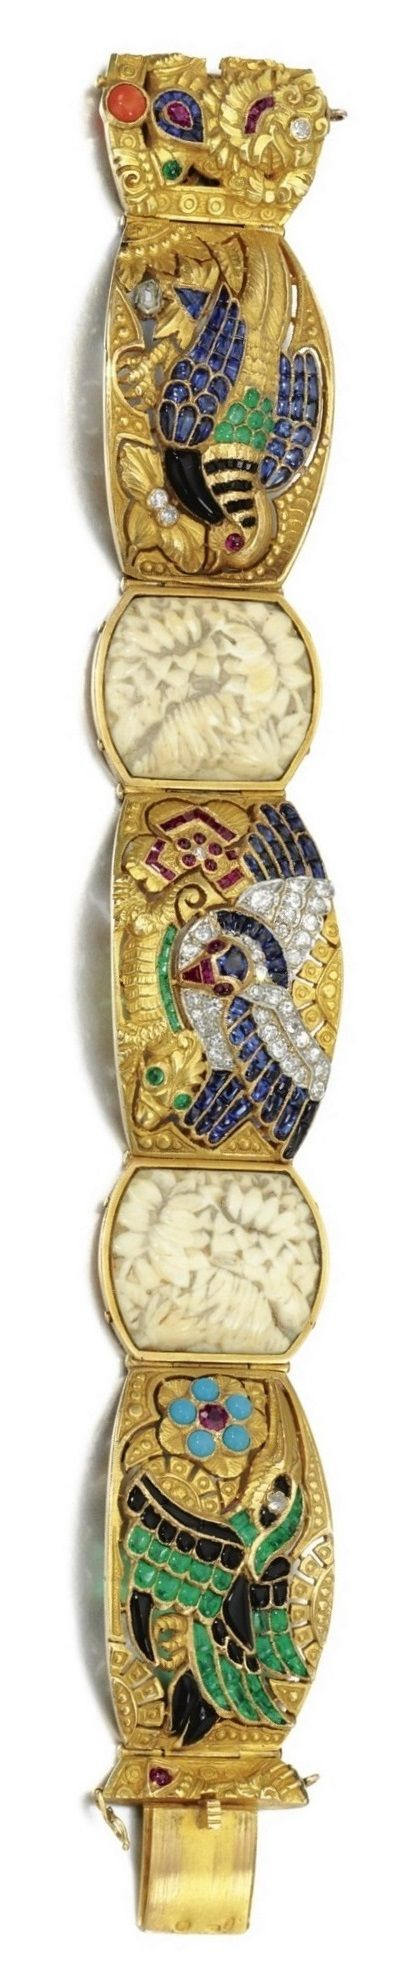 AN ART DECO GOLD, GEM-SET AND DIAMOND BRACELET, SPANISH, CIRCA 1930. Designed as a series of tonneau-shaped curved plaques, depicting birds in flight, a lizard and Aztec inspired deity, set with calibré-cut and buff top sapphires, emeralds, rubies, coral, turquoise, onyx and accented with variously cut diamonds, to pierced and engraved backgrounds of foliate and organic motifs and two carved bone plaques, French import mark and Spanish assay mark. #ArtDeco #bracelet